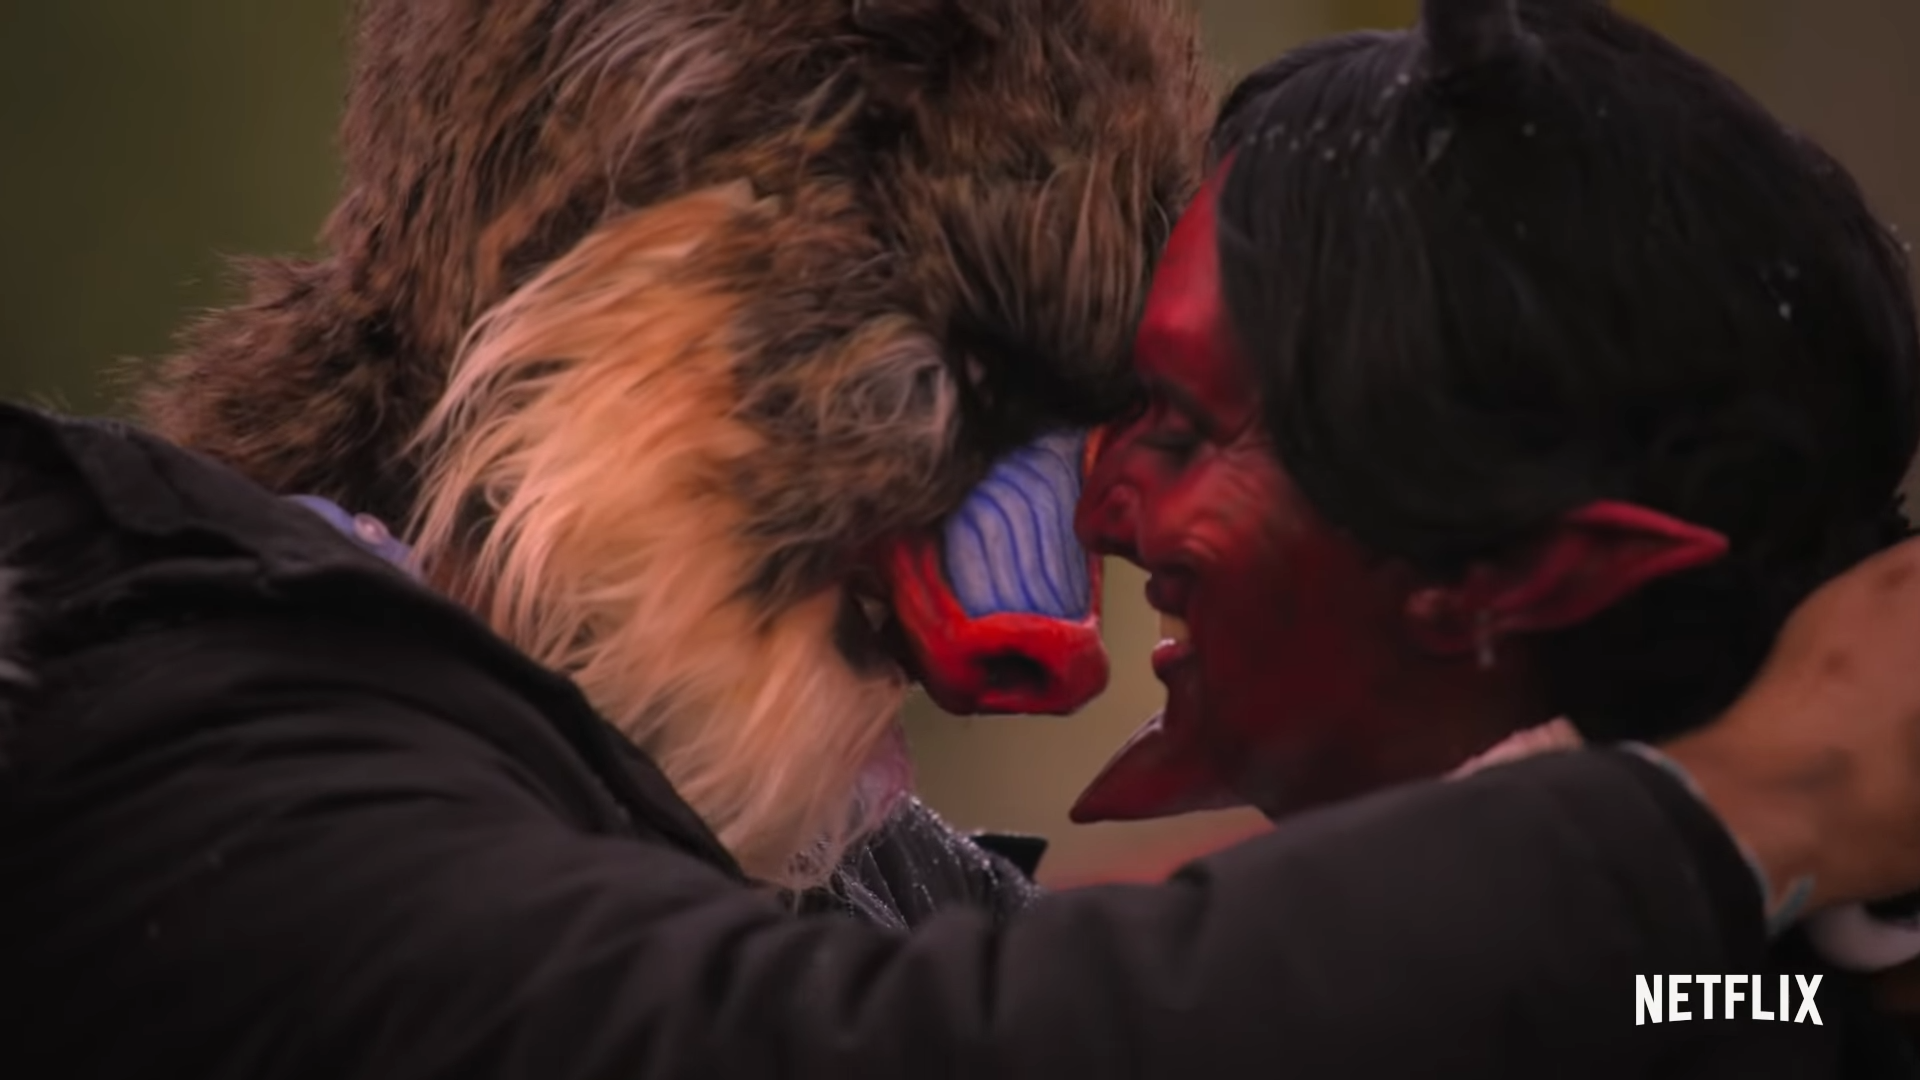 babboon man and devil lady kissing